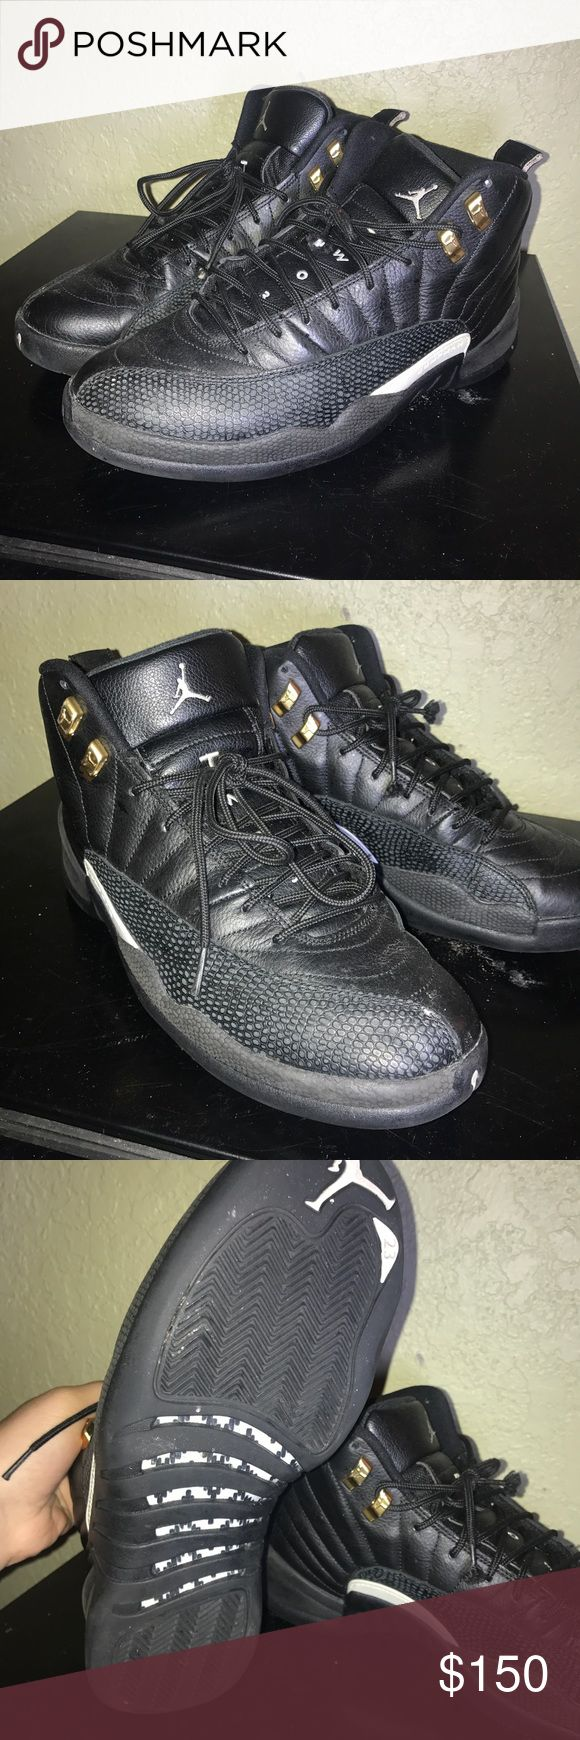 Retro jordan master 12s These are one of my favorite shoes of all time! Super clean! Need new laces minimal cleaning and damage! Jordan Shoes Sneakers